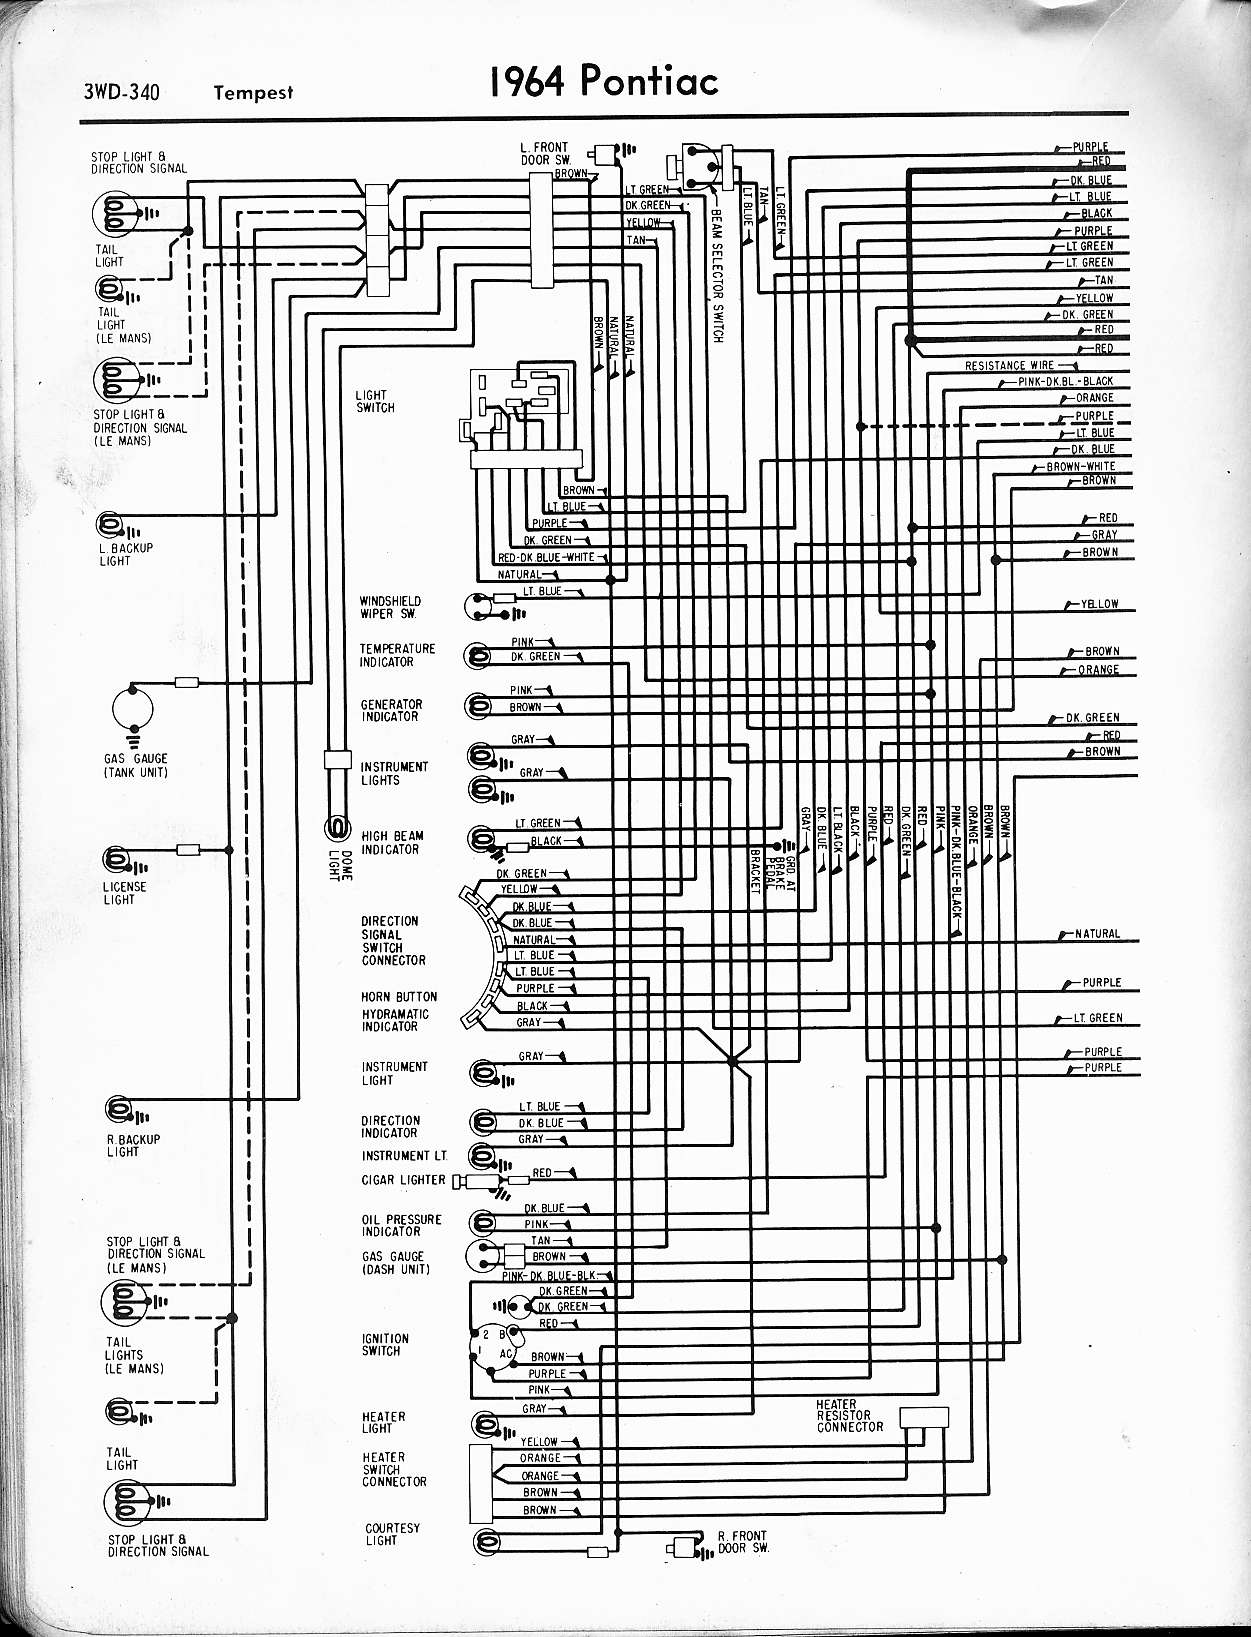 pontiac grand prix wiring diagram with Wiring Diagrams on Wiring Diagram For 2004 Gmc Envoy also T12931407 Diagram 2006 pontiac g6 serpentine likewise Cadillac Deville Radiator Drain Plug Location moreover Gmos 01 Wiring Diagram 2005 Grand Am moreover 784q2 Toyota Camry Le Recently Replaced Cylinder Head Gasket.